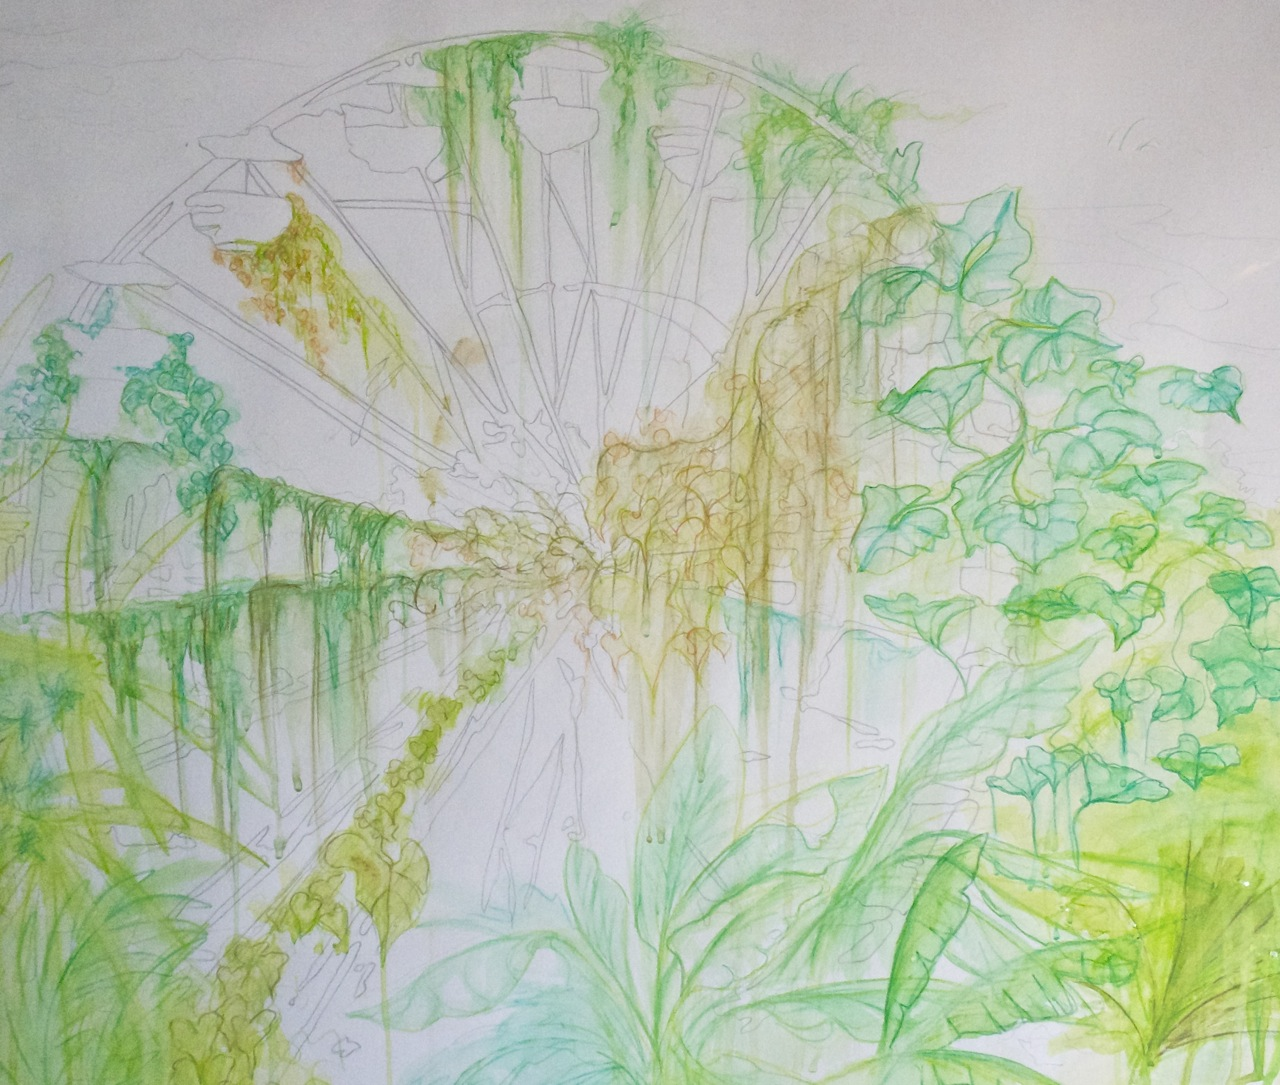 Urban Green: Water front Farris-Wheel Graphite and watercolor pencil on paper